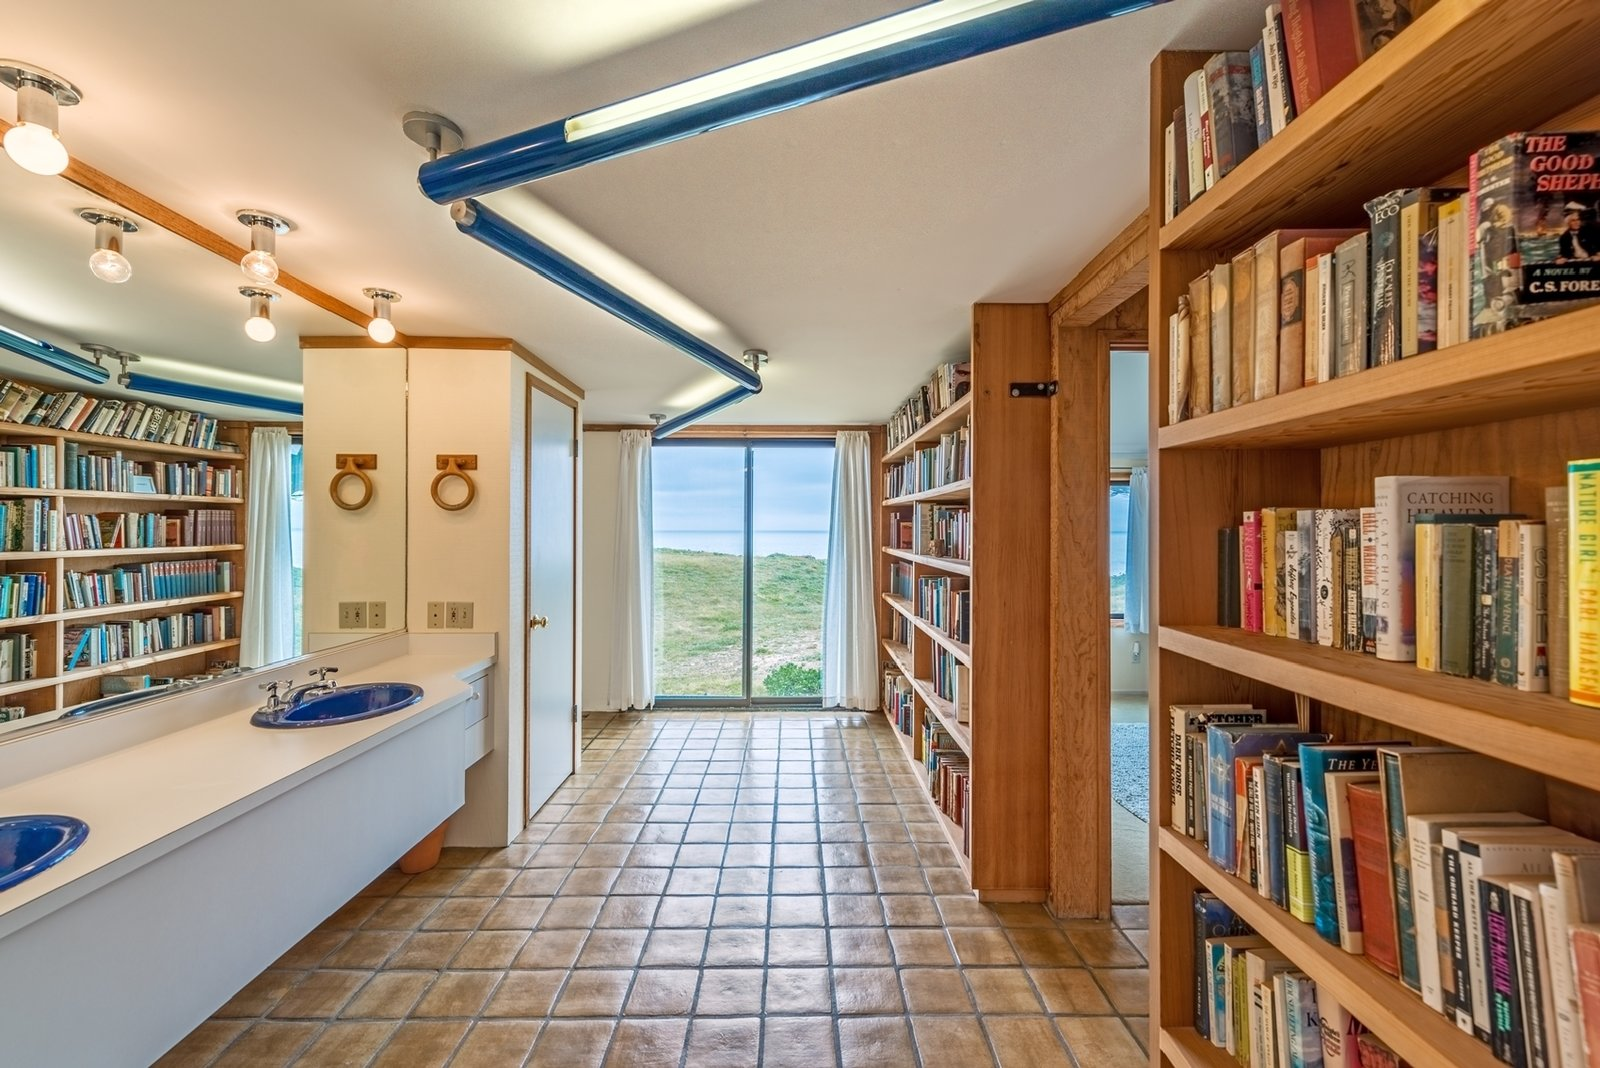 In keeping with Moore's whimsical design sense, a guest bathroom has its own library.